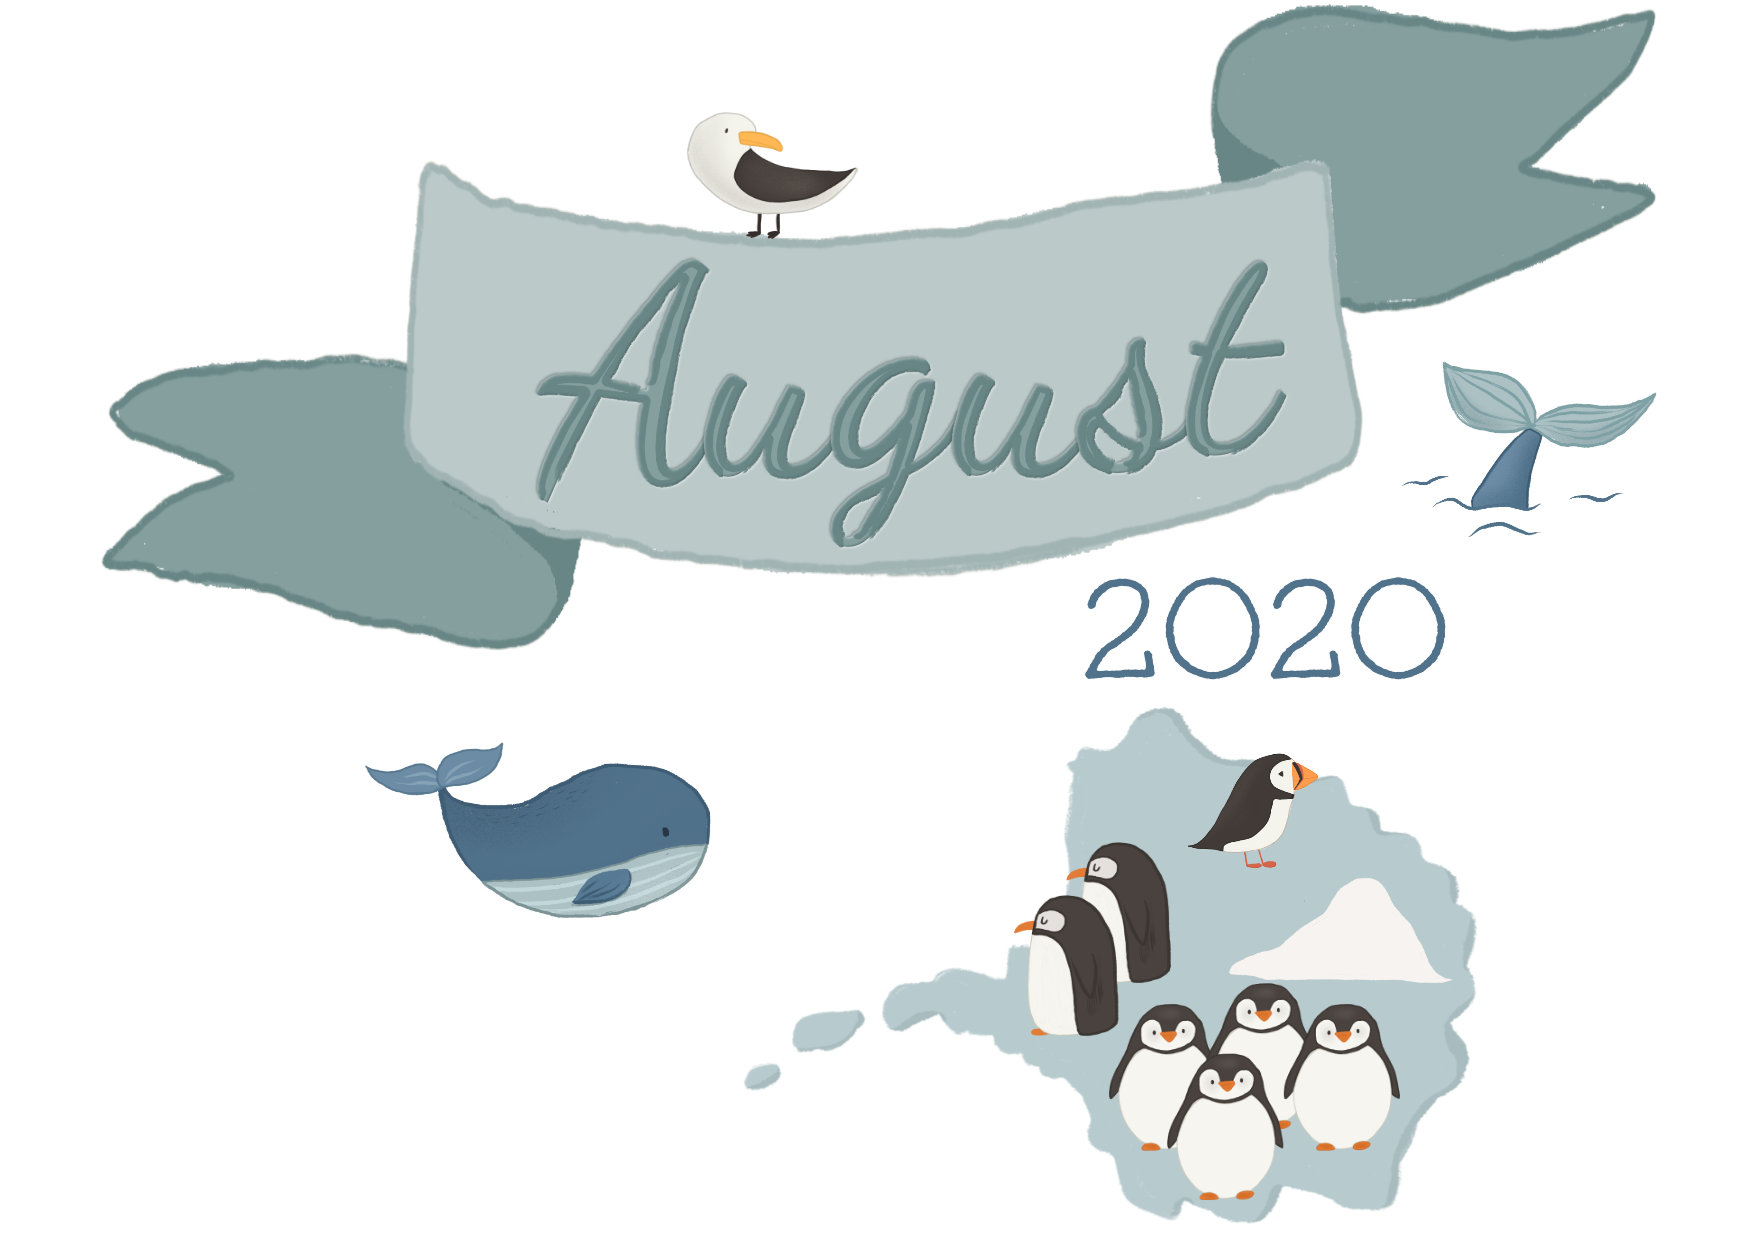 August 2020 banner and cover picture